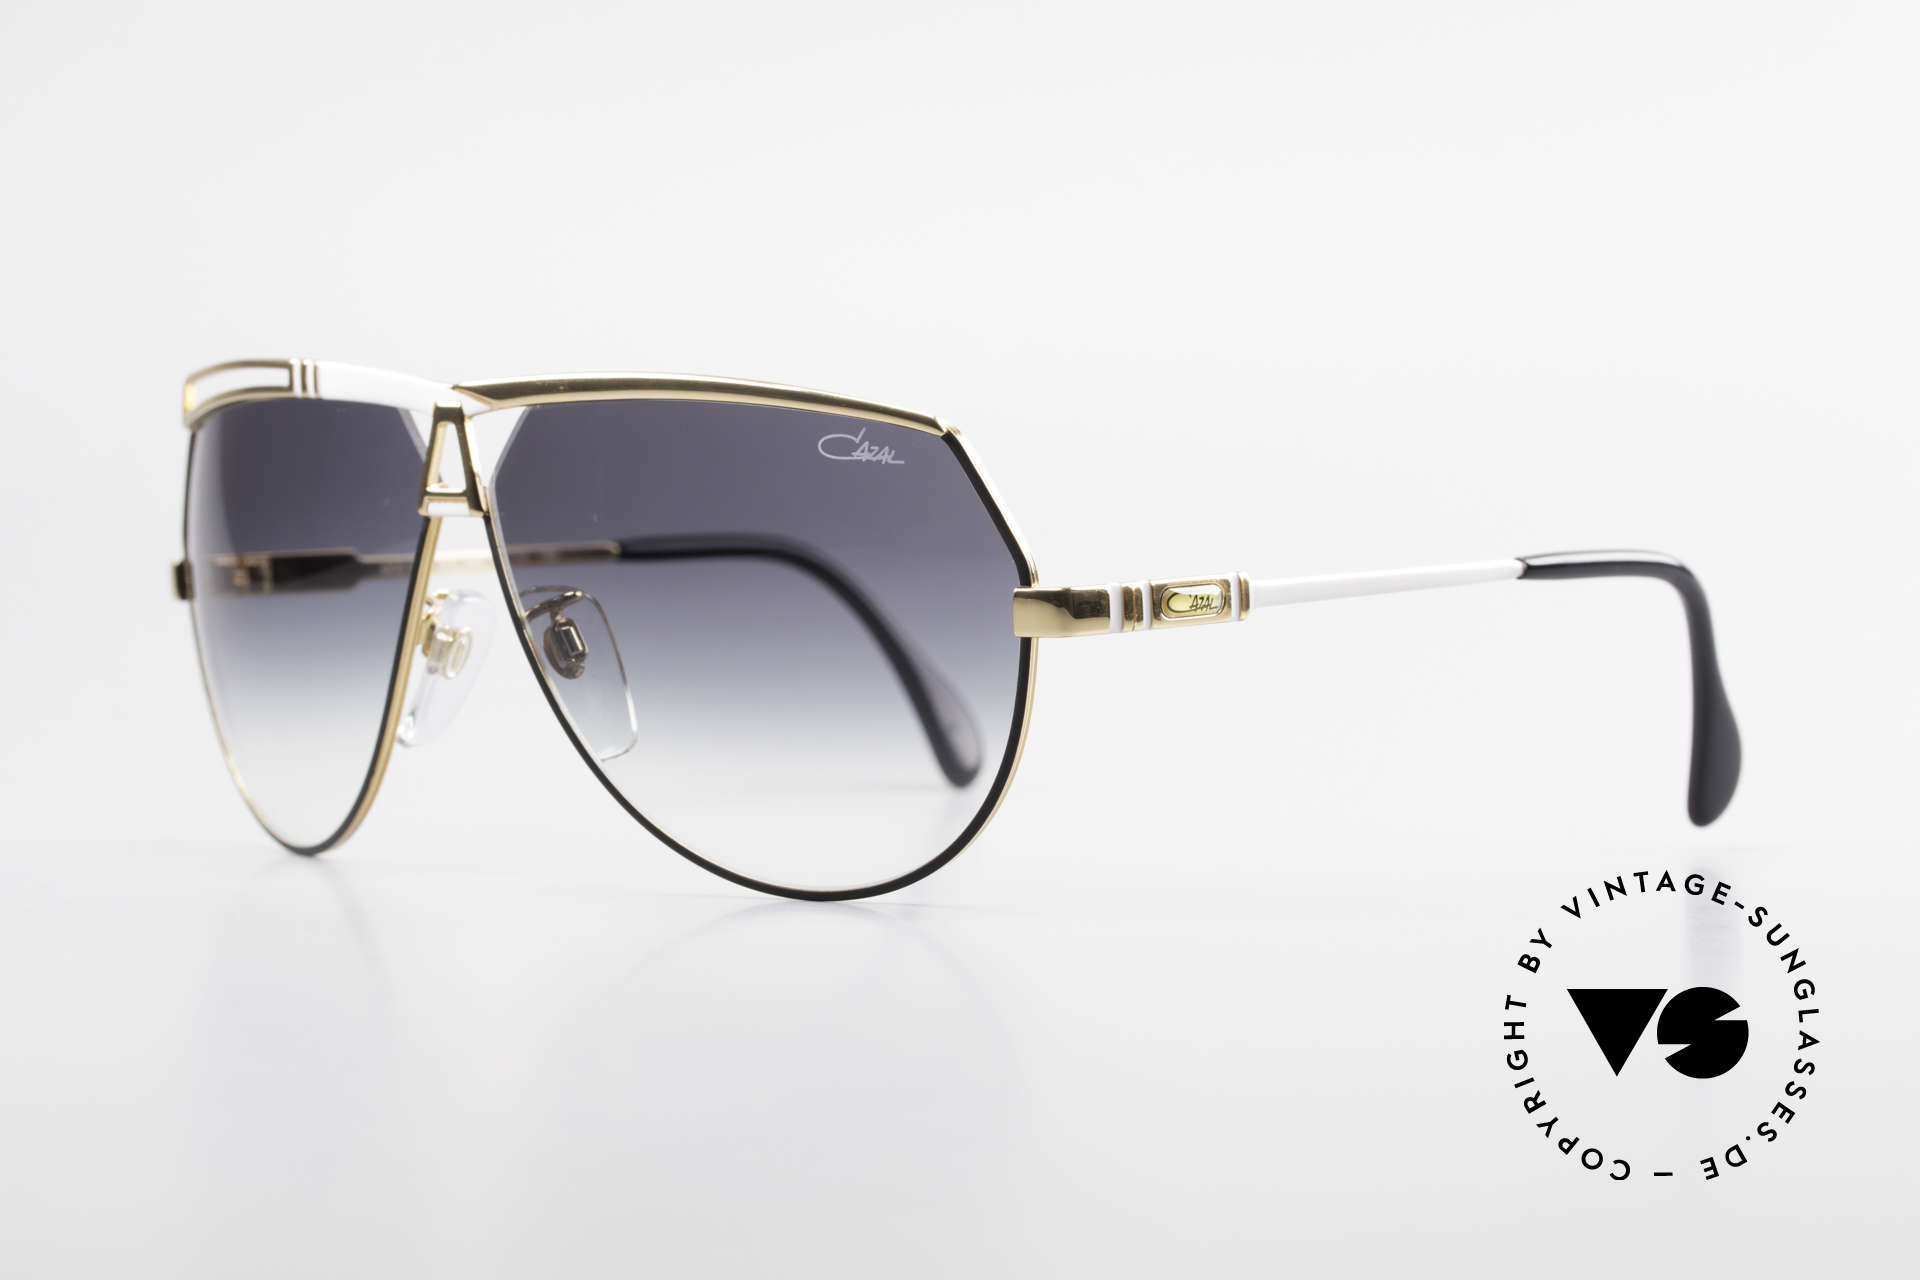 Cazal 954 Rare Vintage Designer Shades, aviator design with huge lenses & great coloring, Made for Men and Women